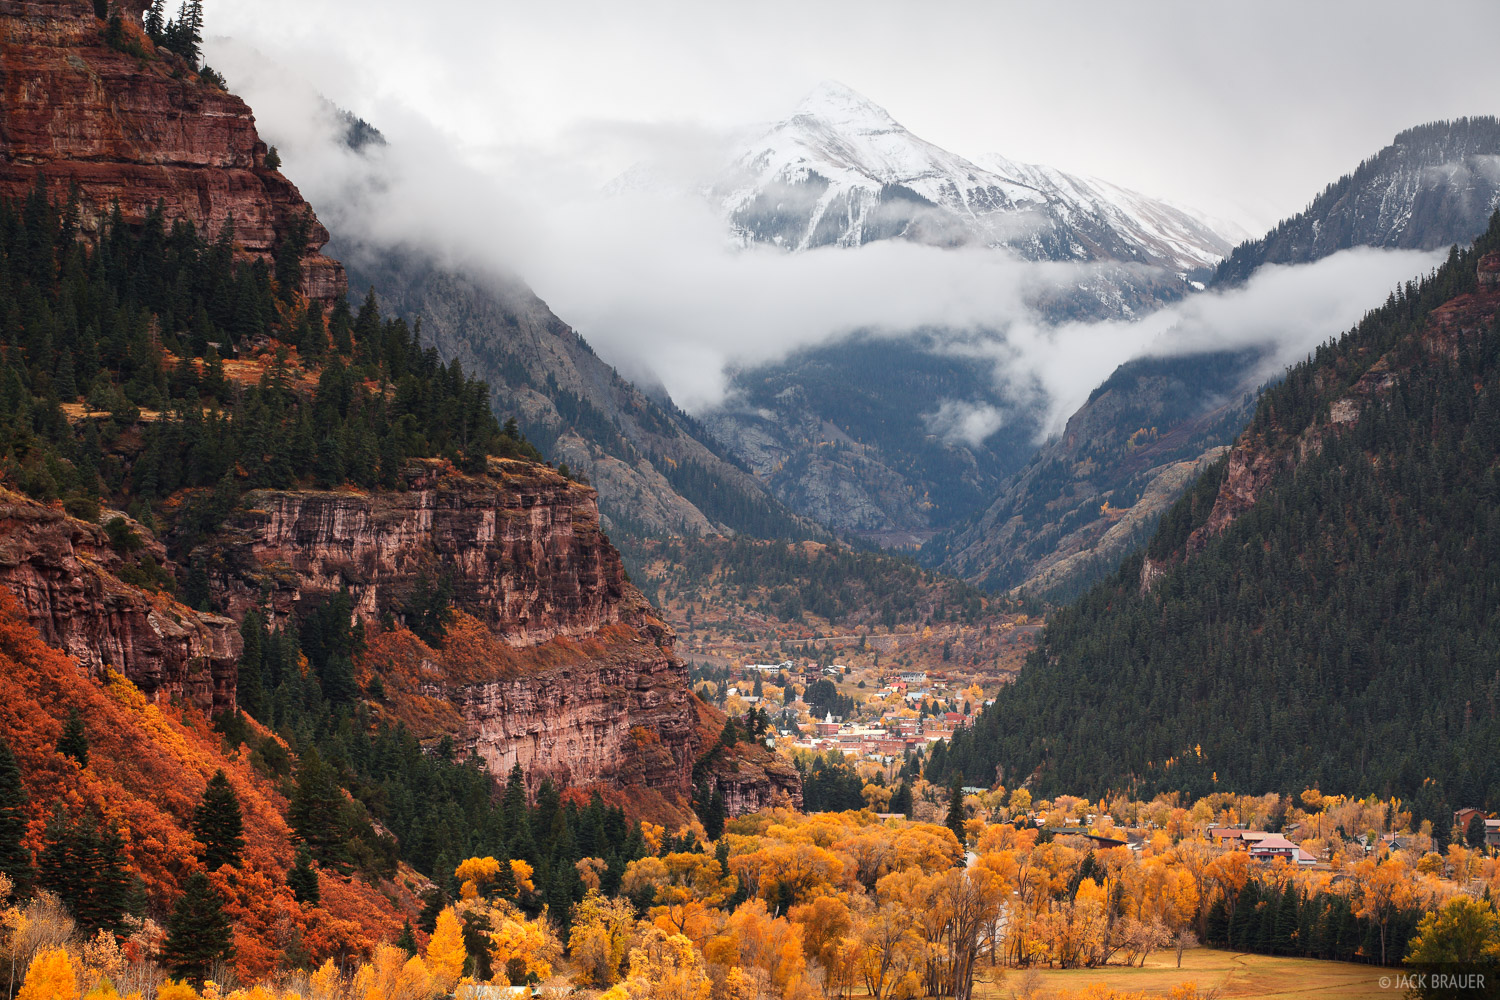 Storm clouds swirl about Mt. Abrams, over the town of Ouray and the Uncompahgre Gorge.